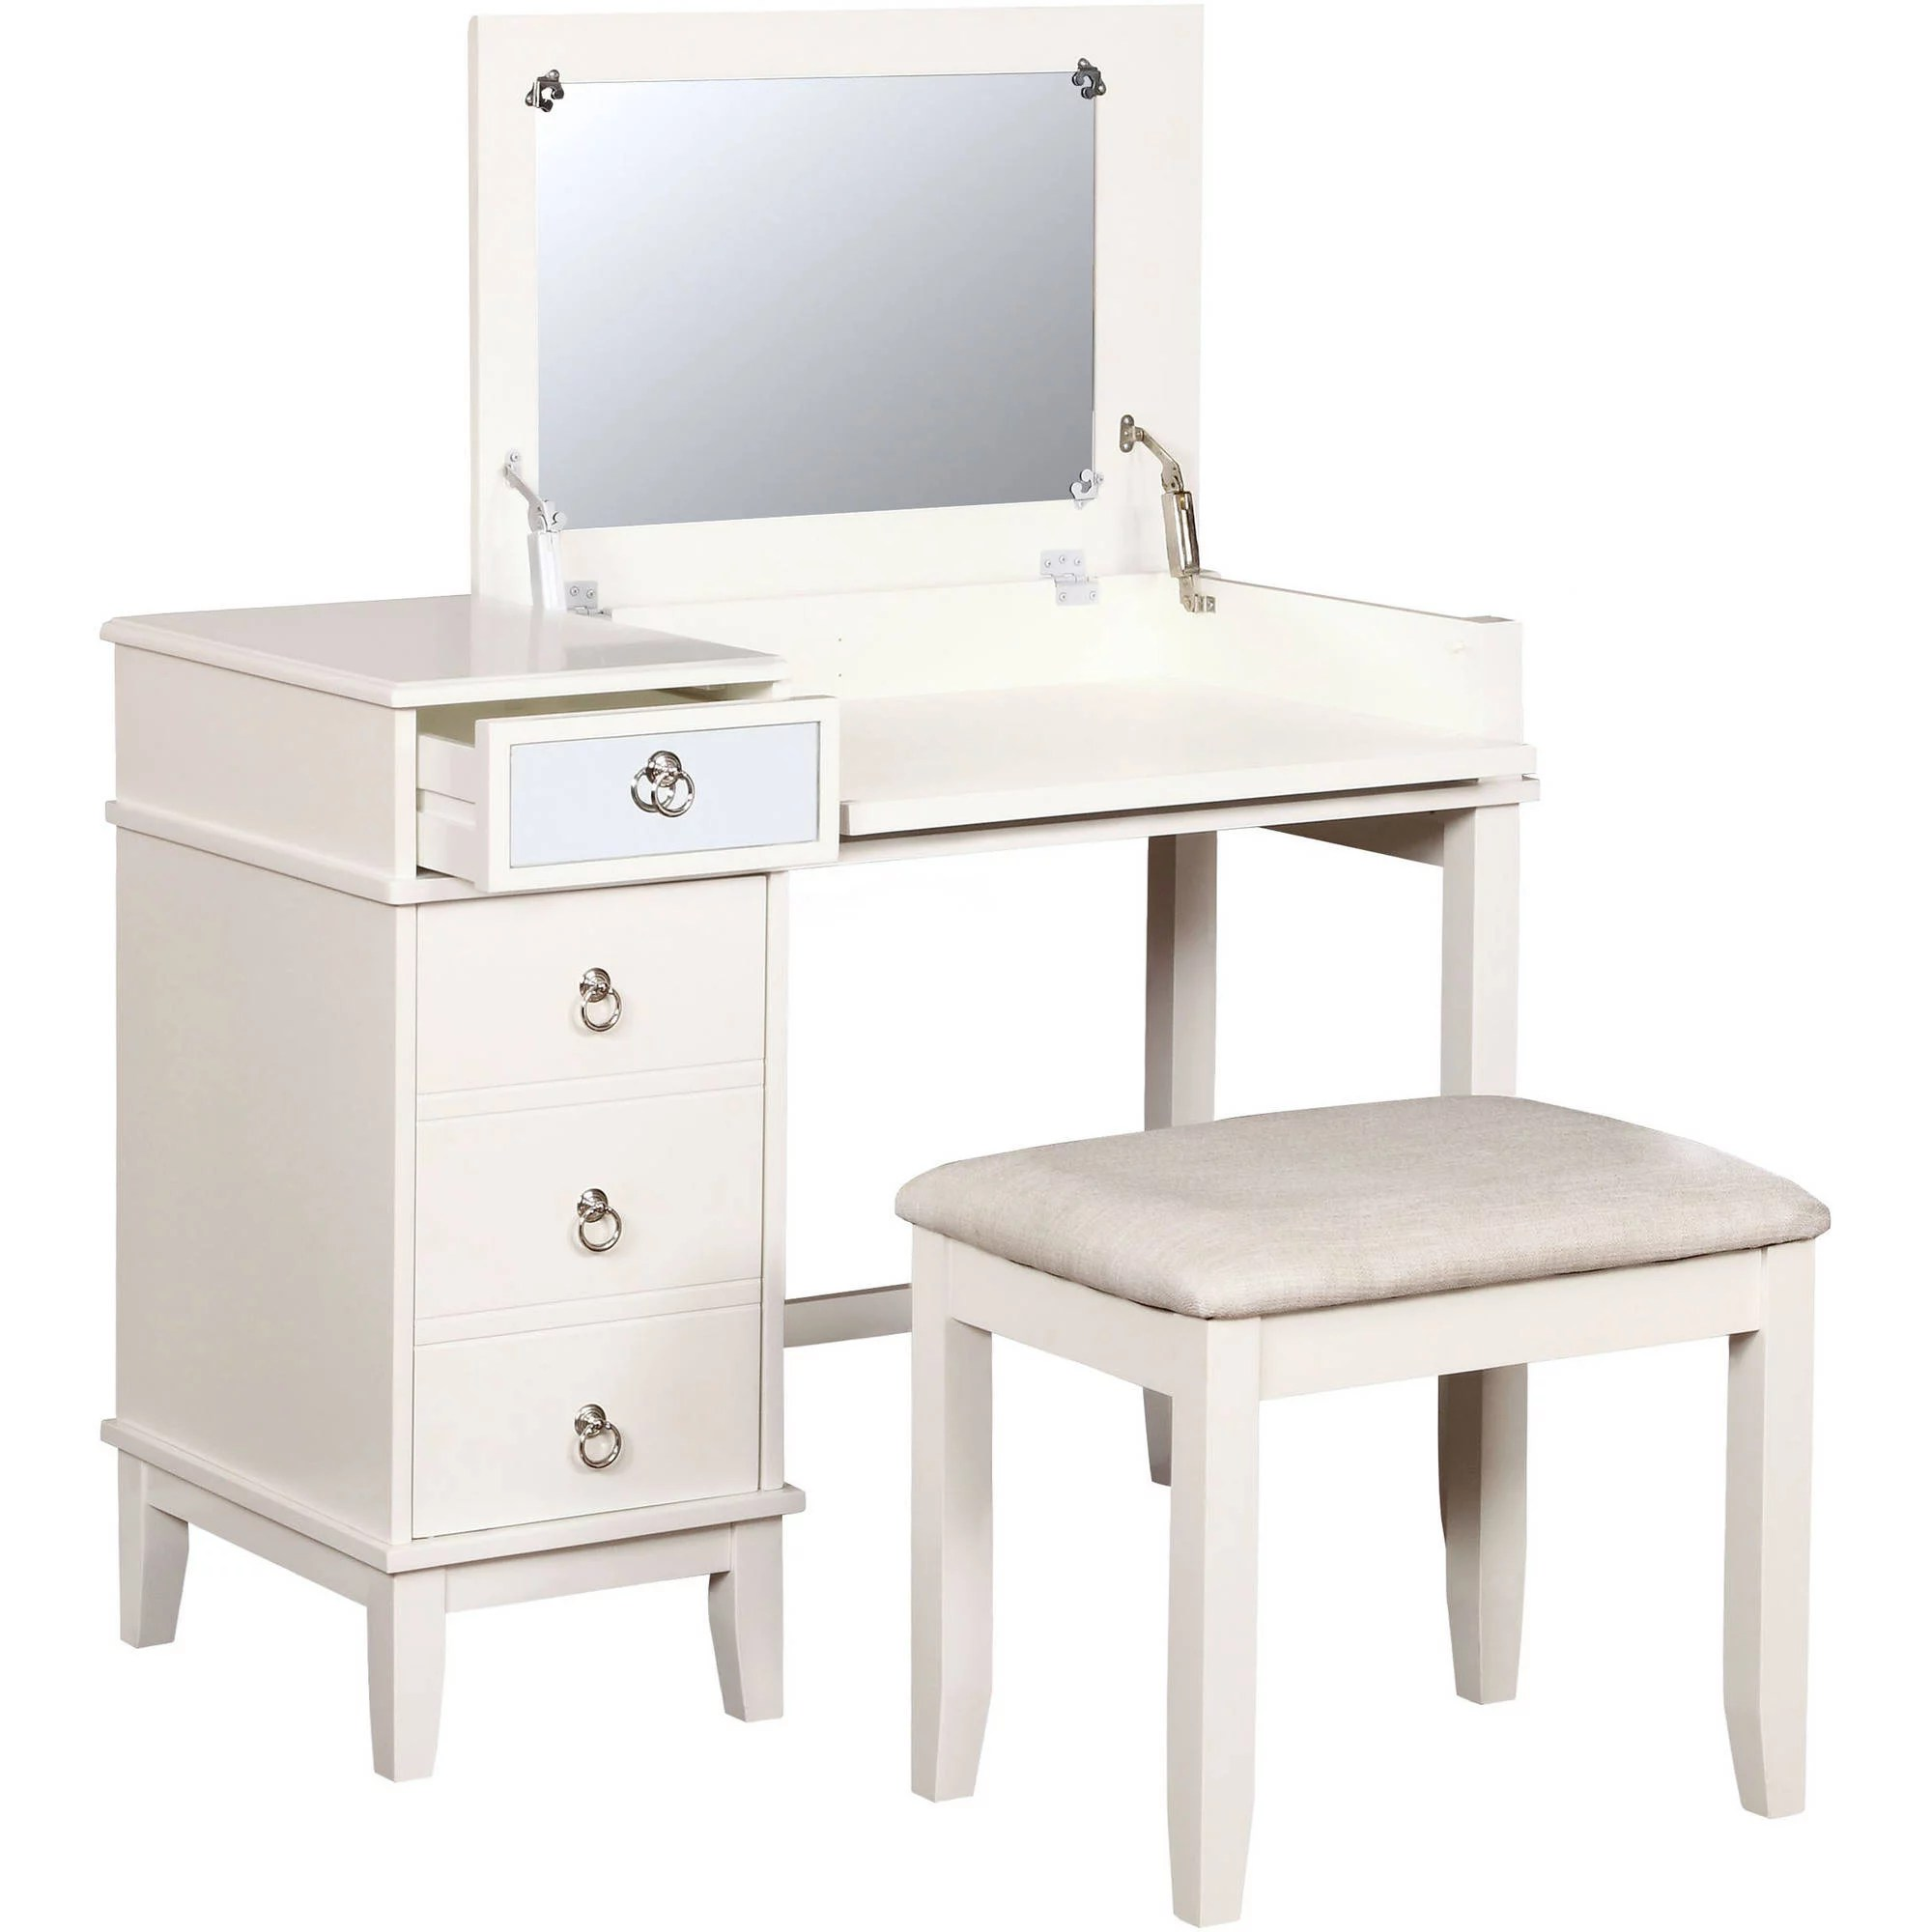 bedroom vanities - walmart